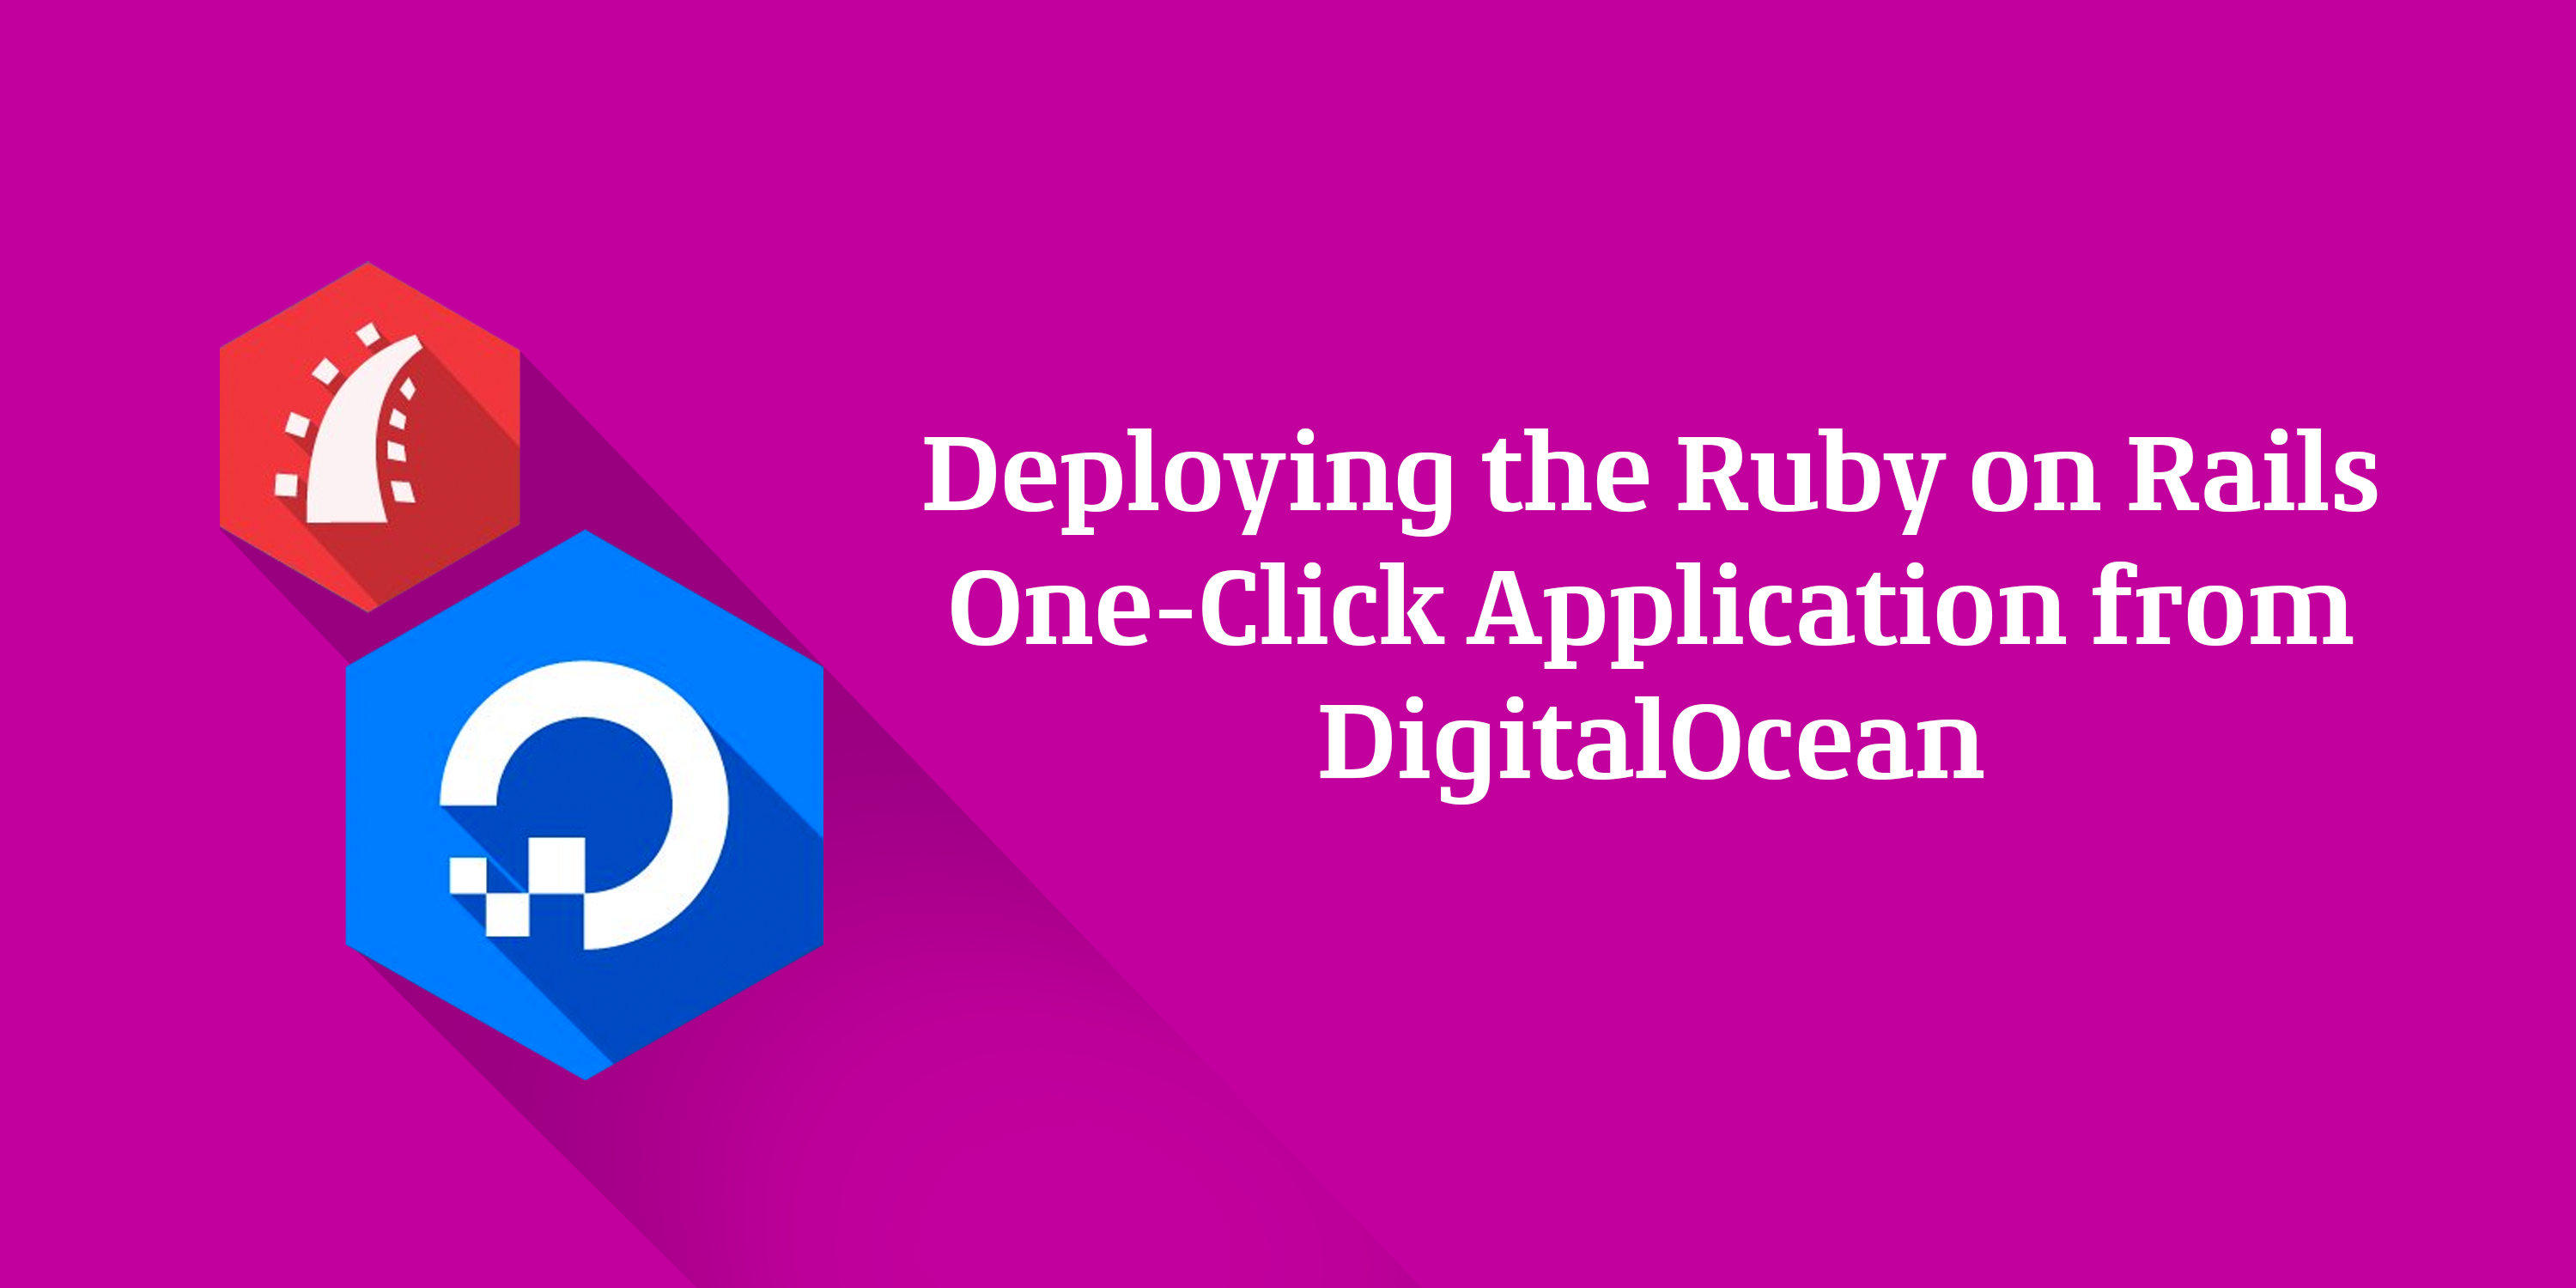 Deploying the Ruby on Rails One-Click-Application-from-DigitalOcean